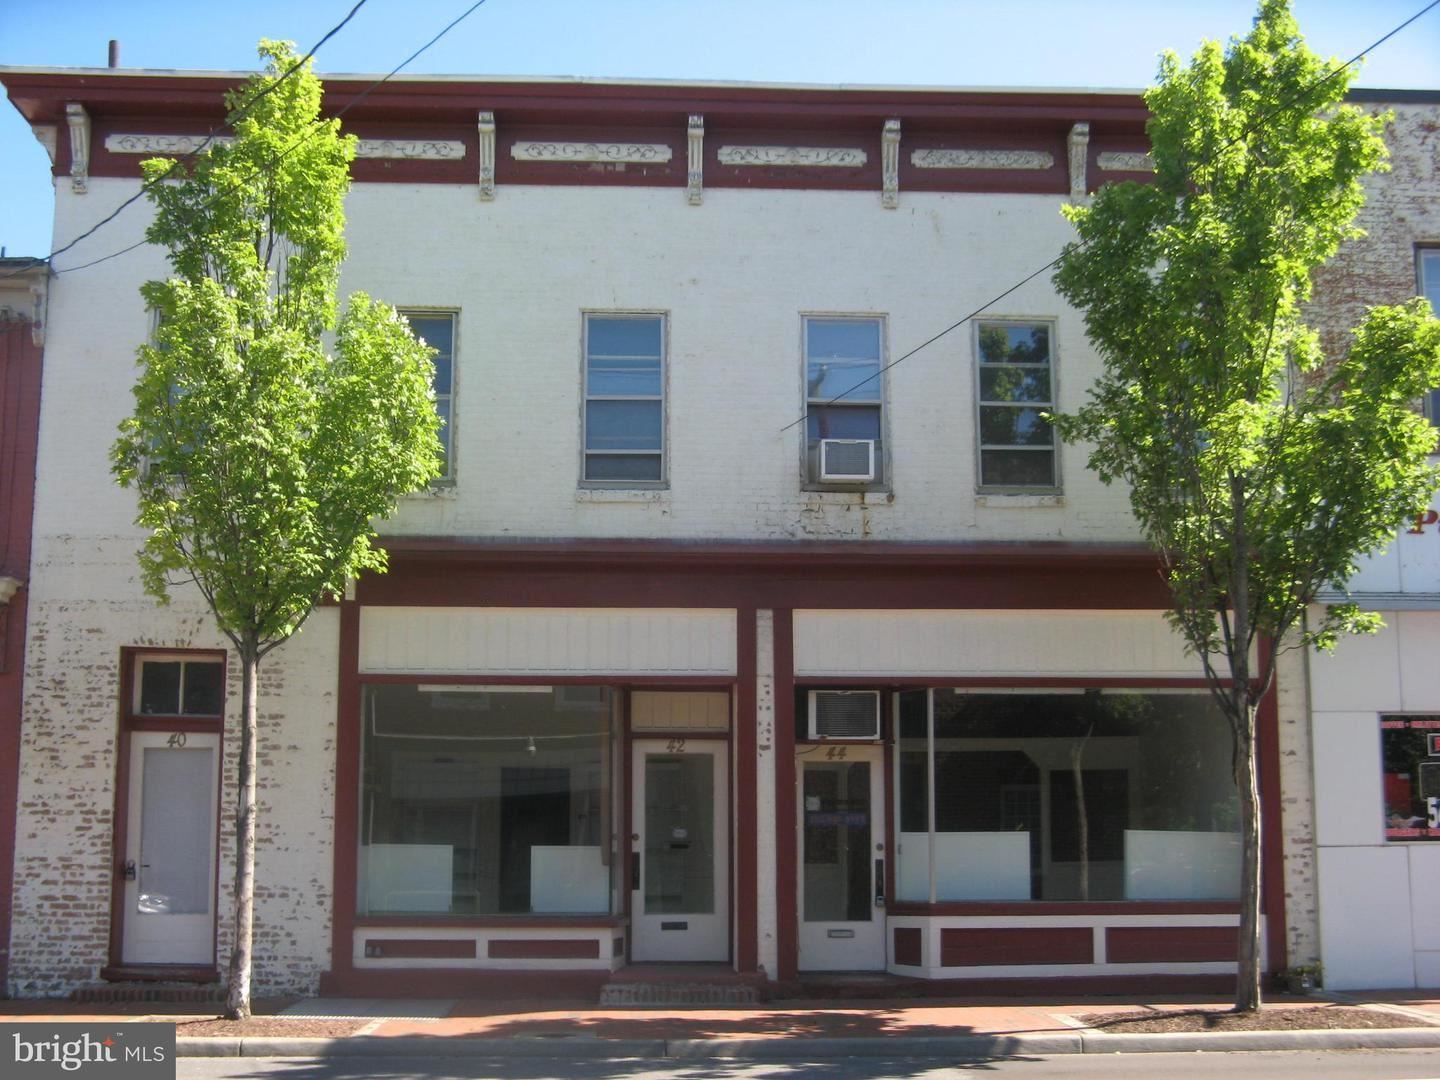 Photo of 40-44 E PICCADILLY ST, WINCHESTER, VA 22601 (MLS # VAWI114594)